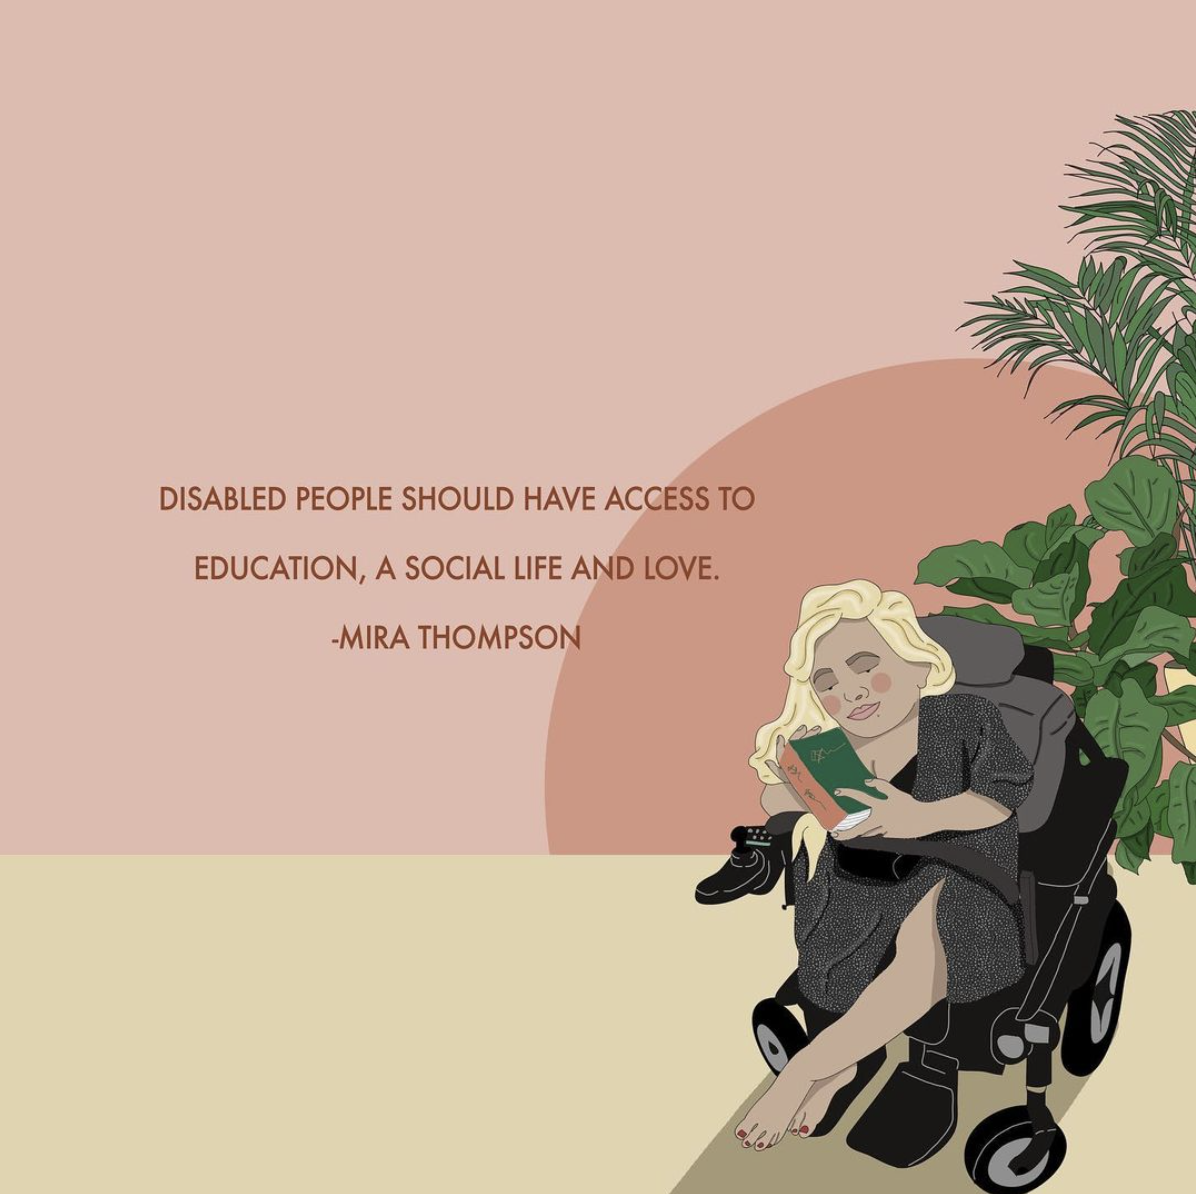 """""""Disabled people should have access to education, a social life, and love."""" - Mira Thompson"""